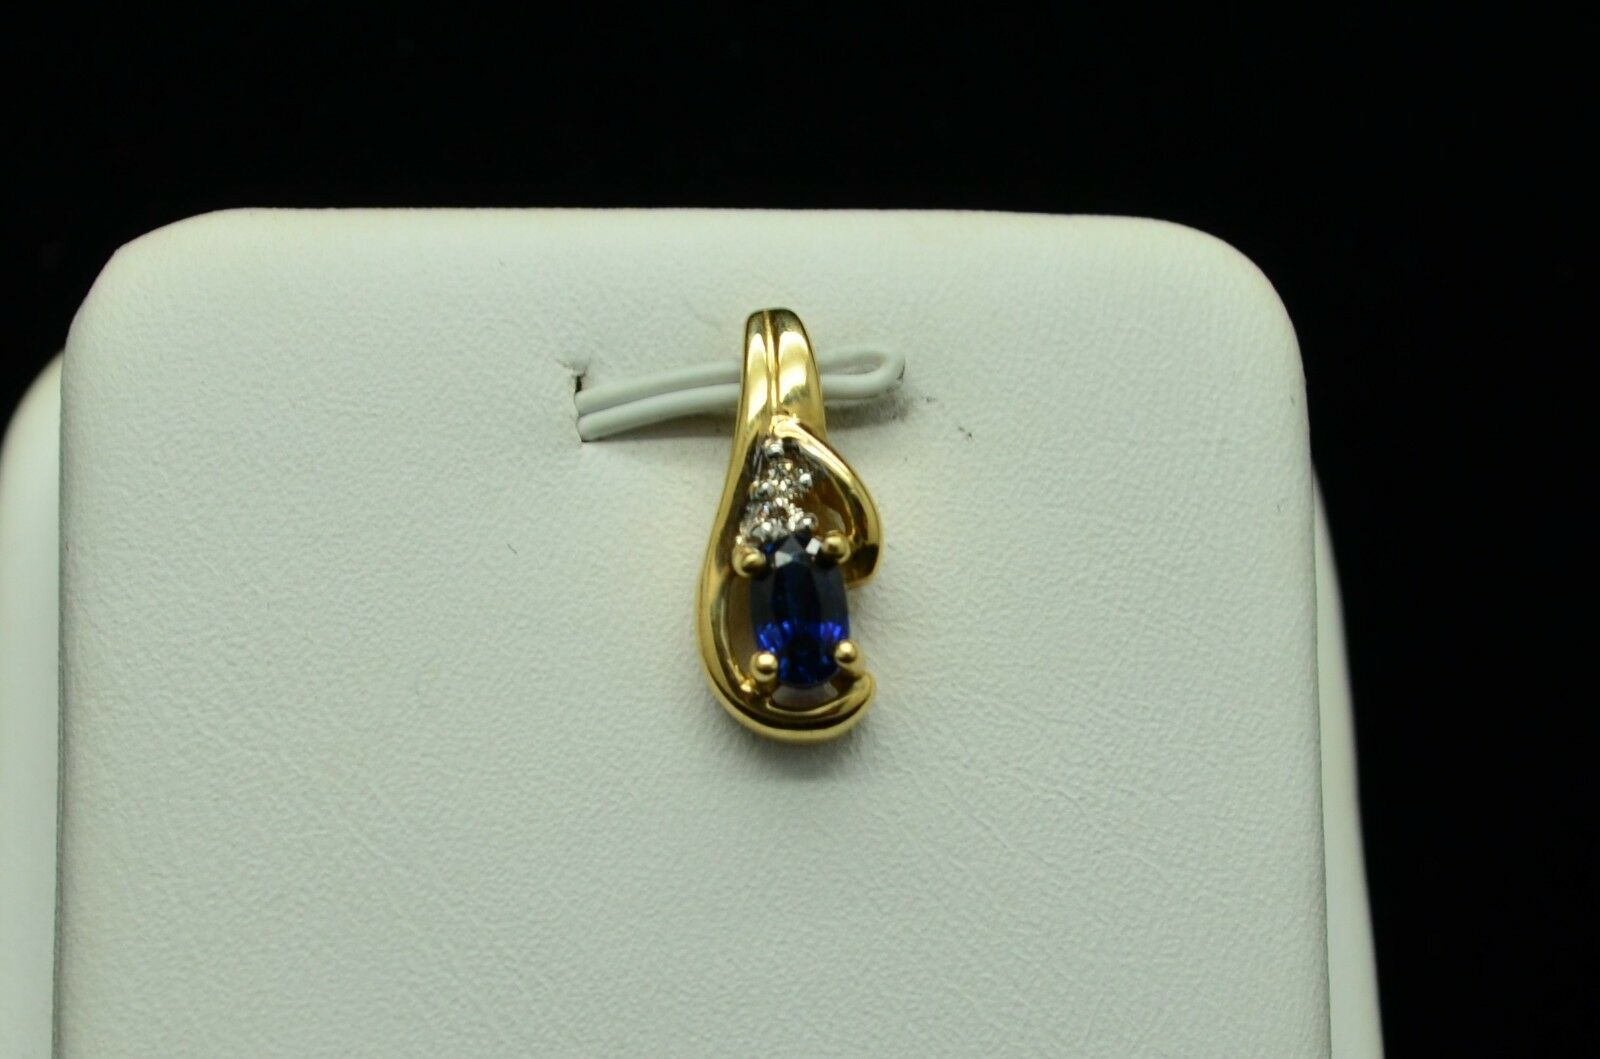 BEAUTIFUL 14K YELLOW gold SAPPHIRE PENDANT WITH SMALL DIAMOND ACCENTS gold-622